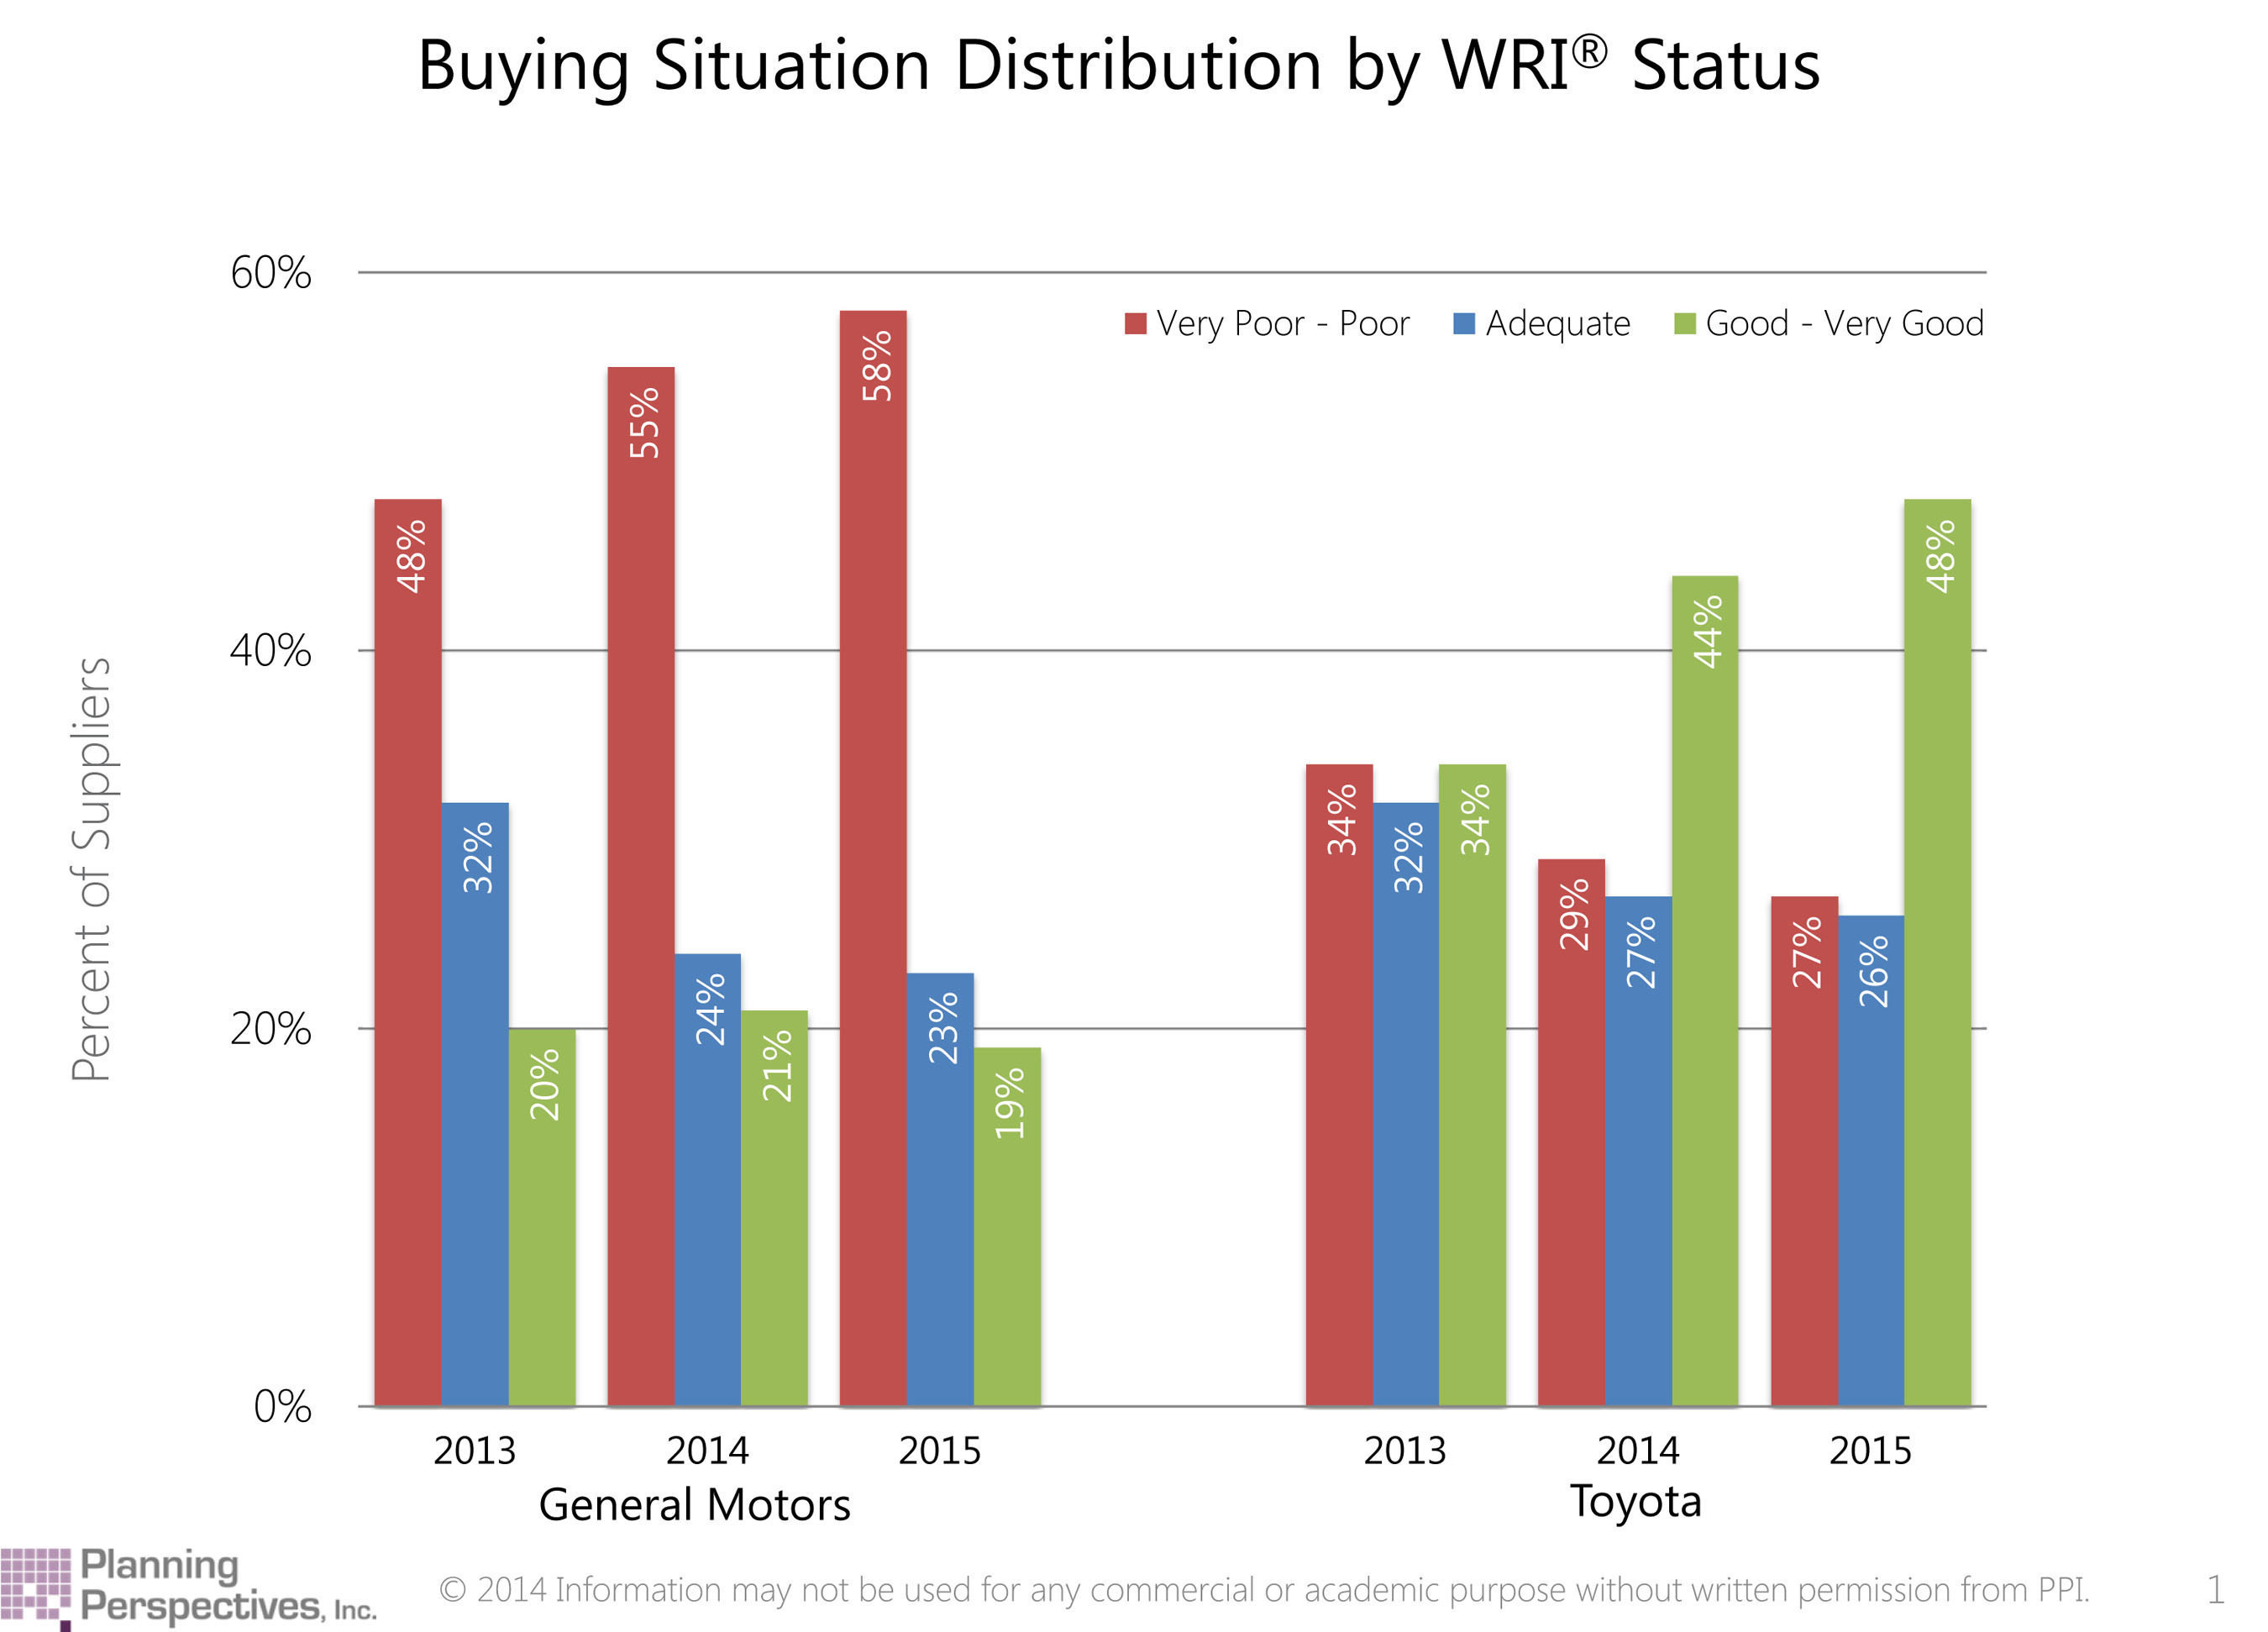 These two graphs compare General Motors' and Toyota's supplier relations.  The red bars indicate the percentage of suppliers with poor relations, while the green bars indicate suppliers with good relations.  Clearly, the number of suppliers saying they have poor relations is much higher with GM and has been increasing, while the number of suppliers saying they have good relations with GM is low and holding steady.  Compare that to Toyota, where the red bars are shrinking and the green bars are increasing...